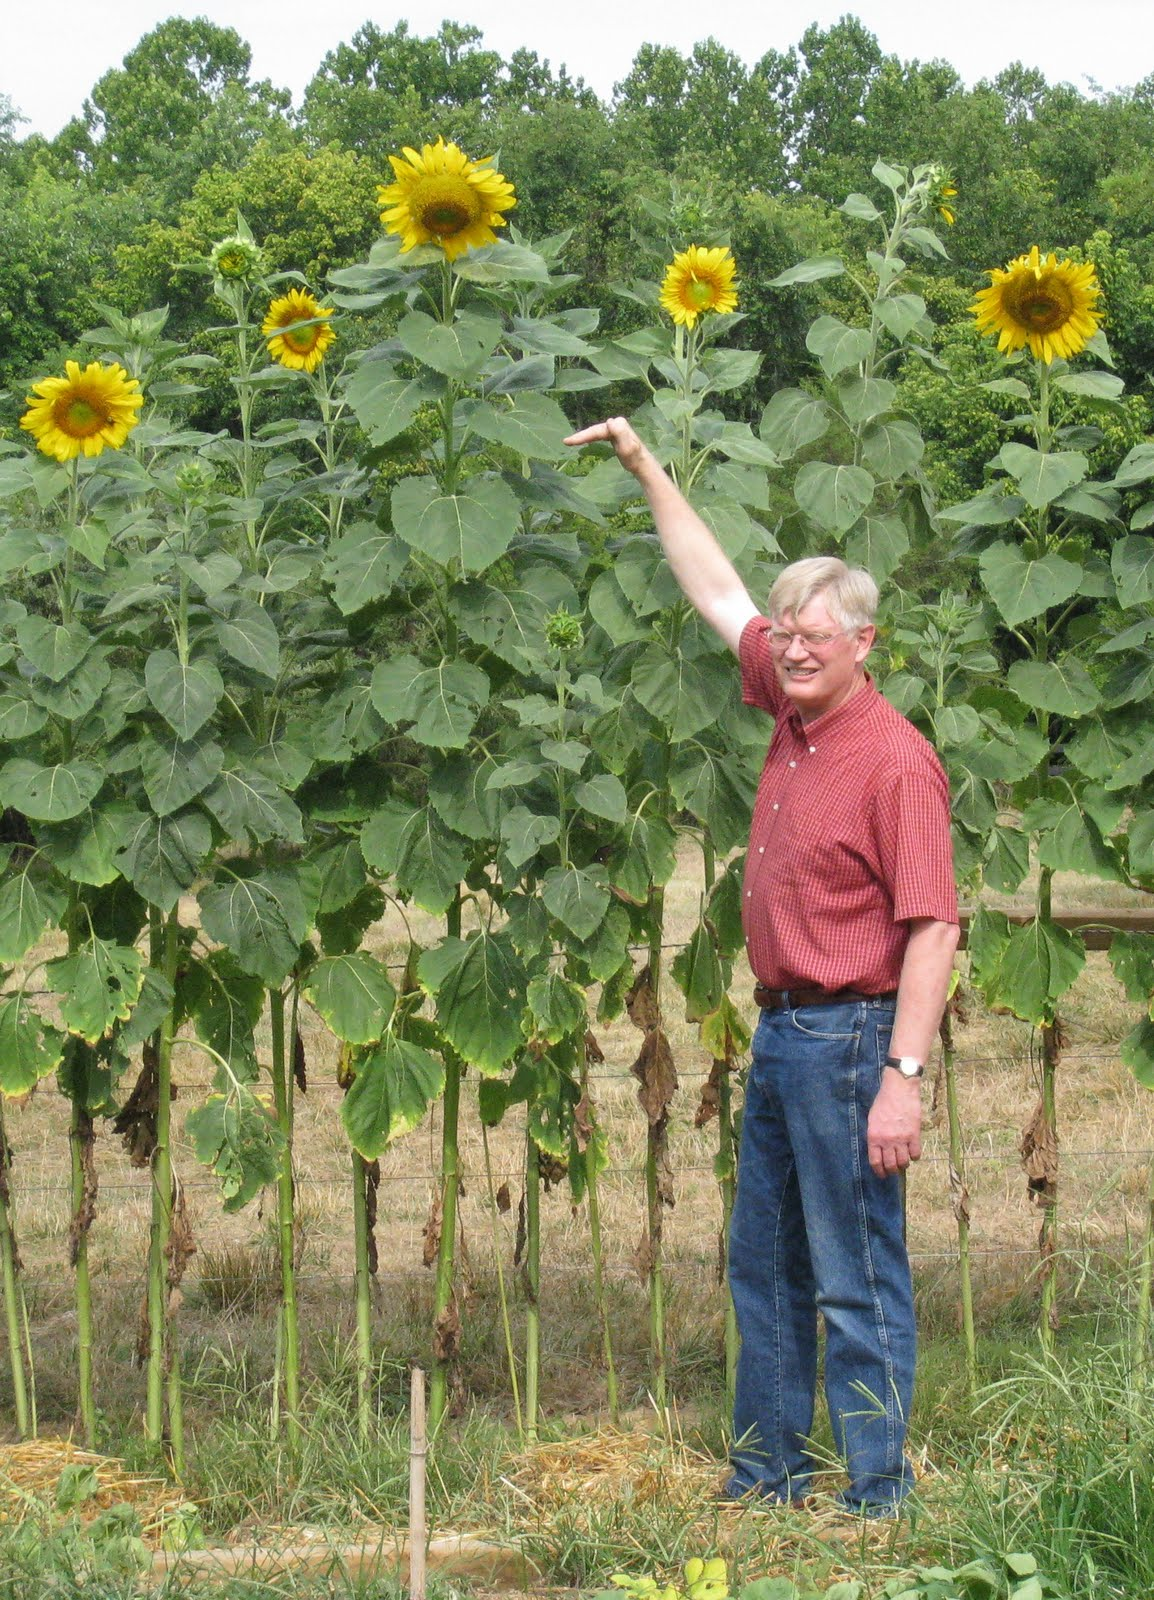 Backyard Farming Sunflowers